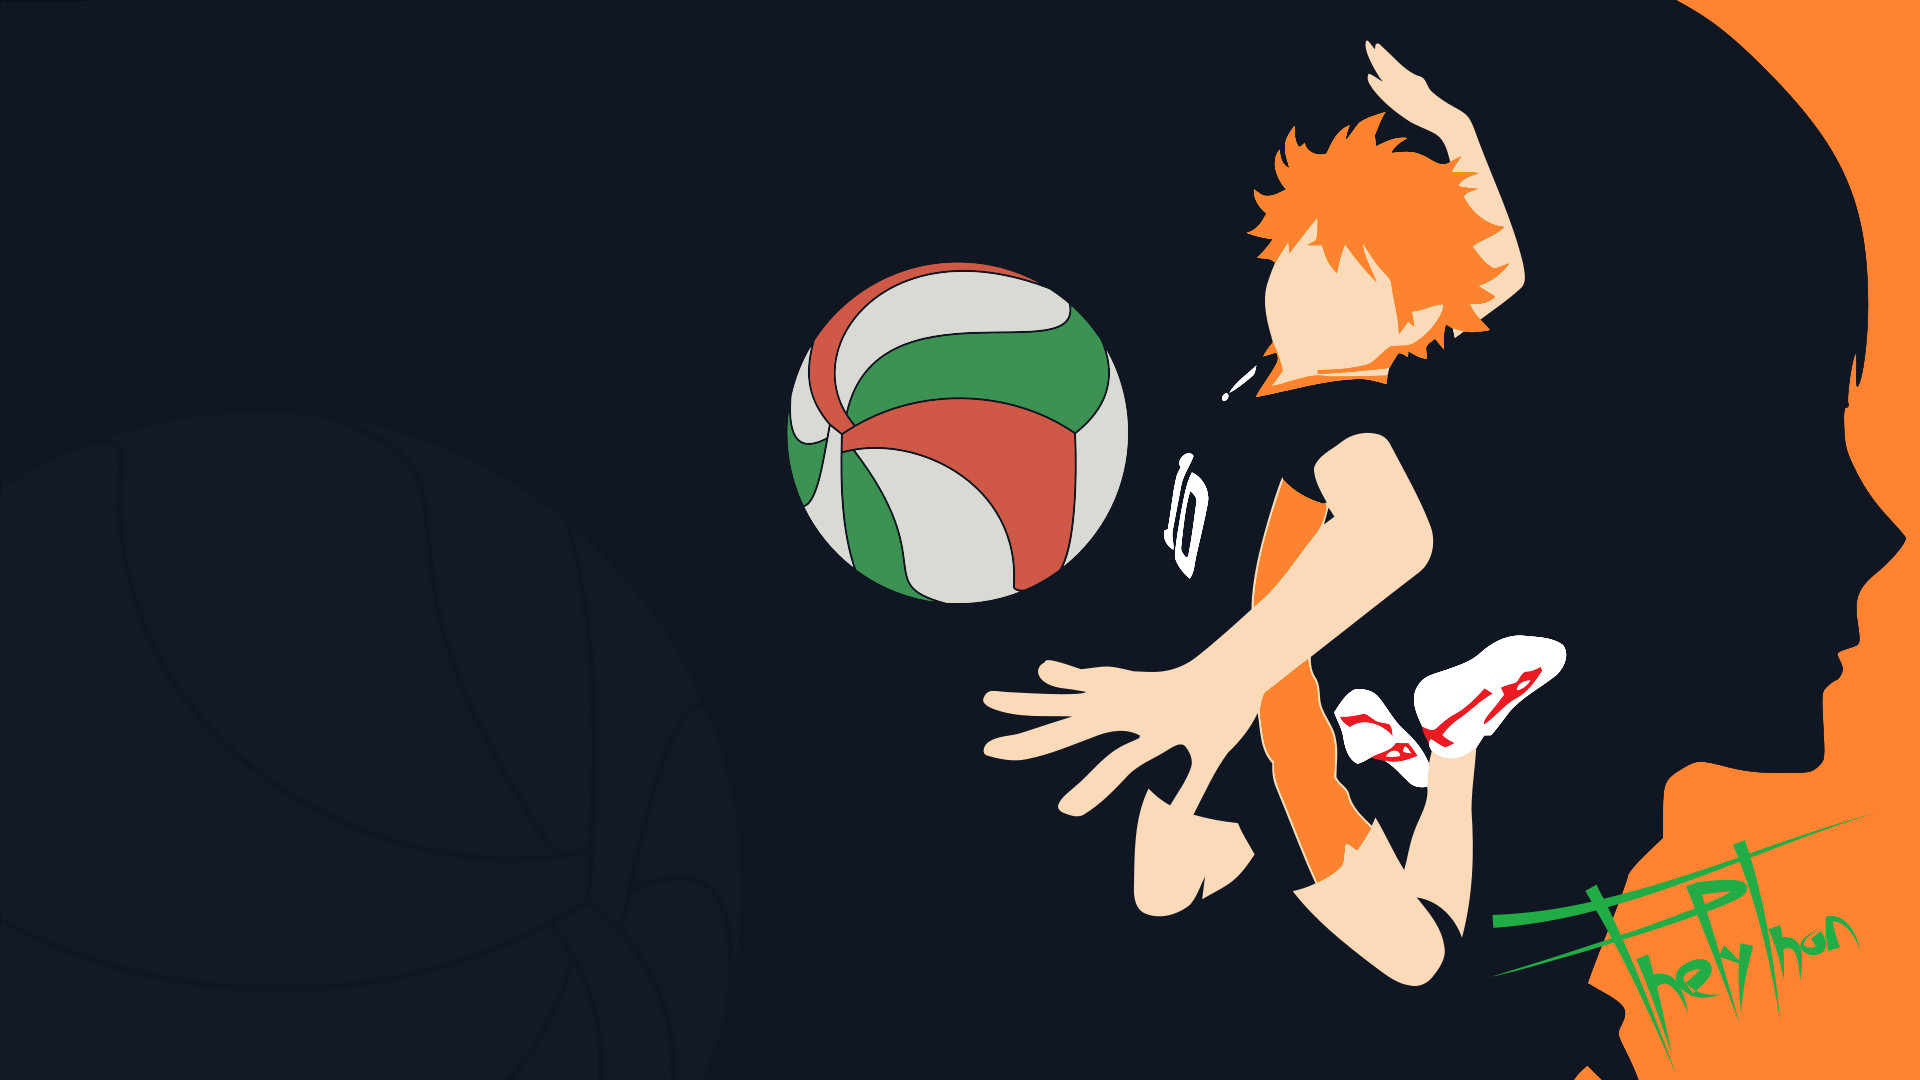 Volleyball Wallpaper Iphone Haikyu Wallpapers 56 Images